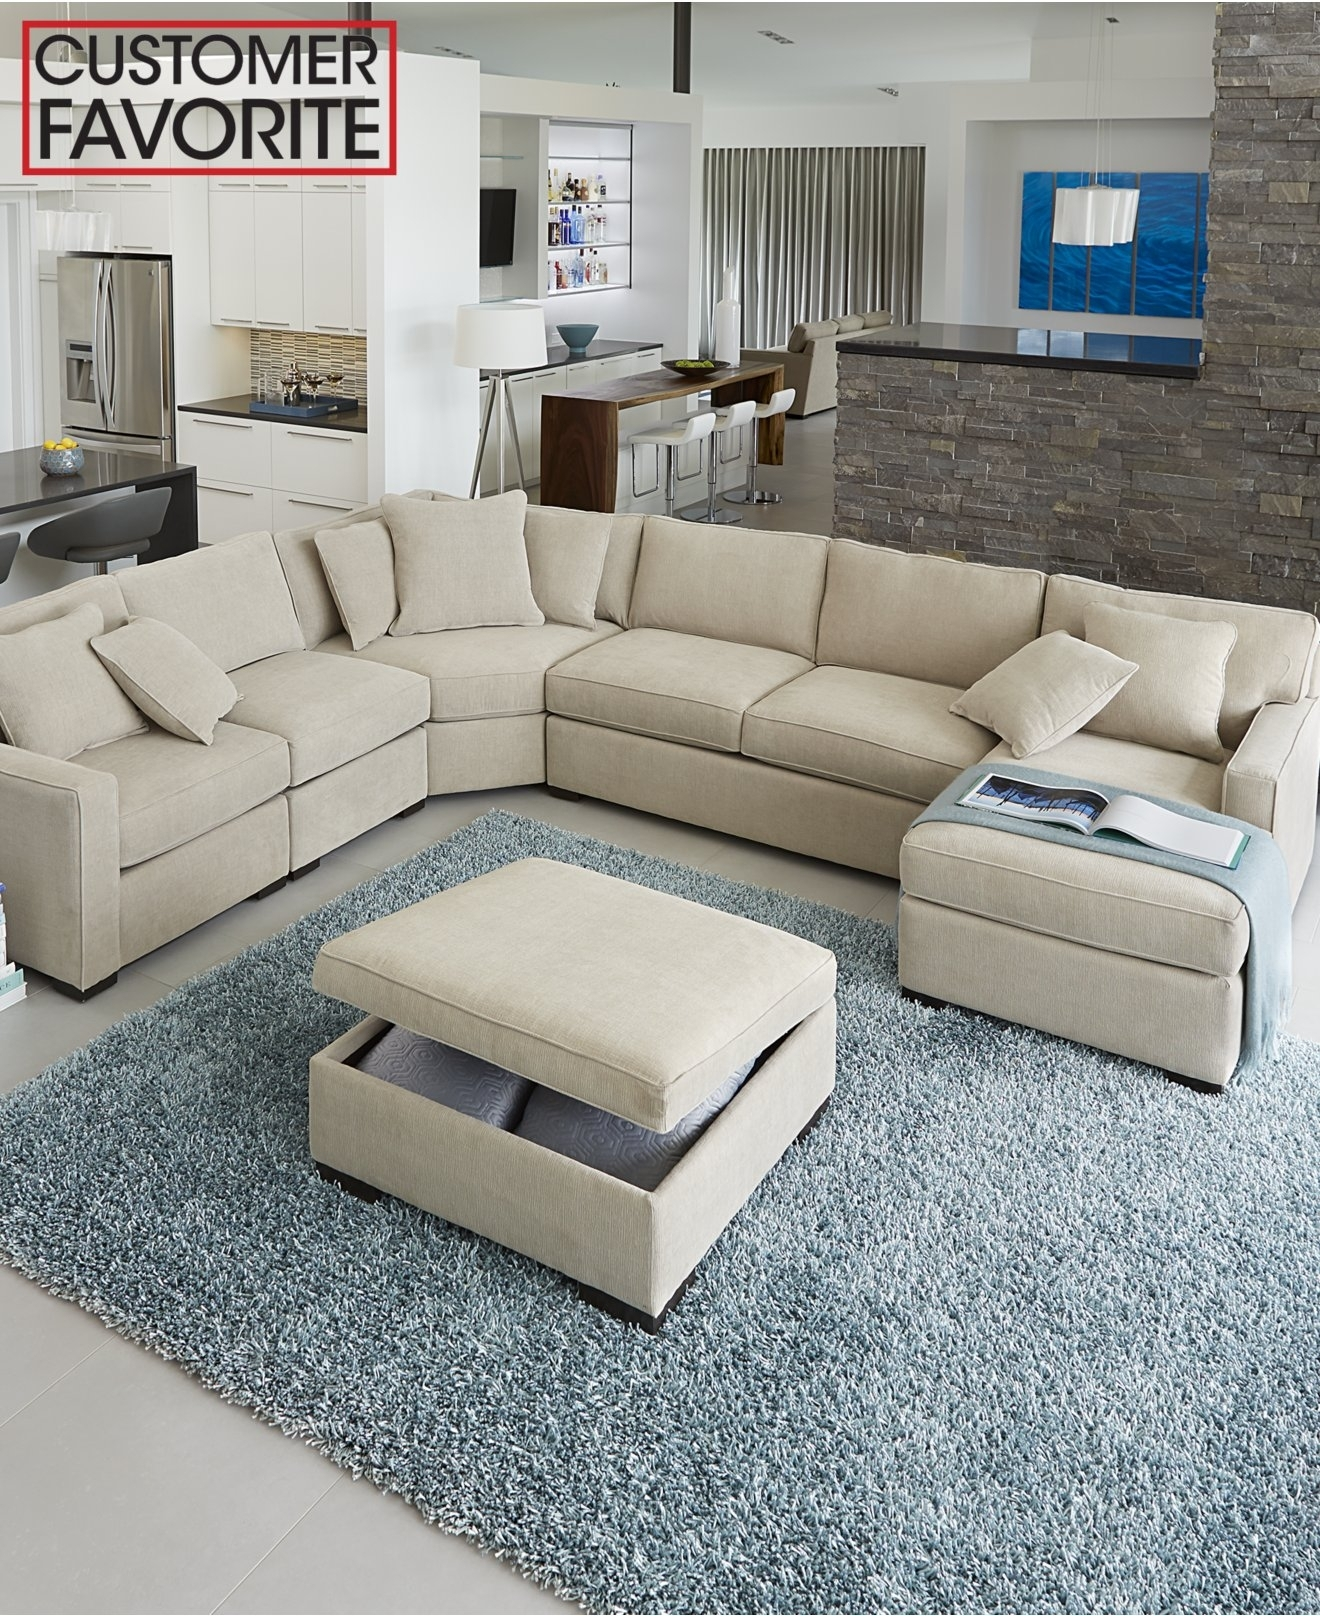 Radley Fabric Sectional Sofa Collection, Created For Macy's Pertaining To Macys Sectional Sofas (Image 6 of 10)